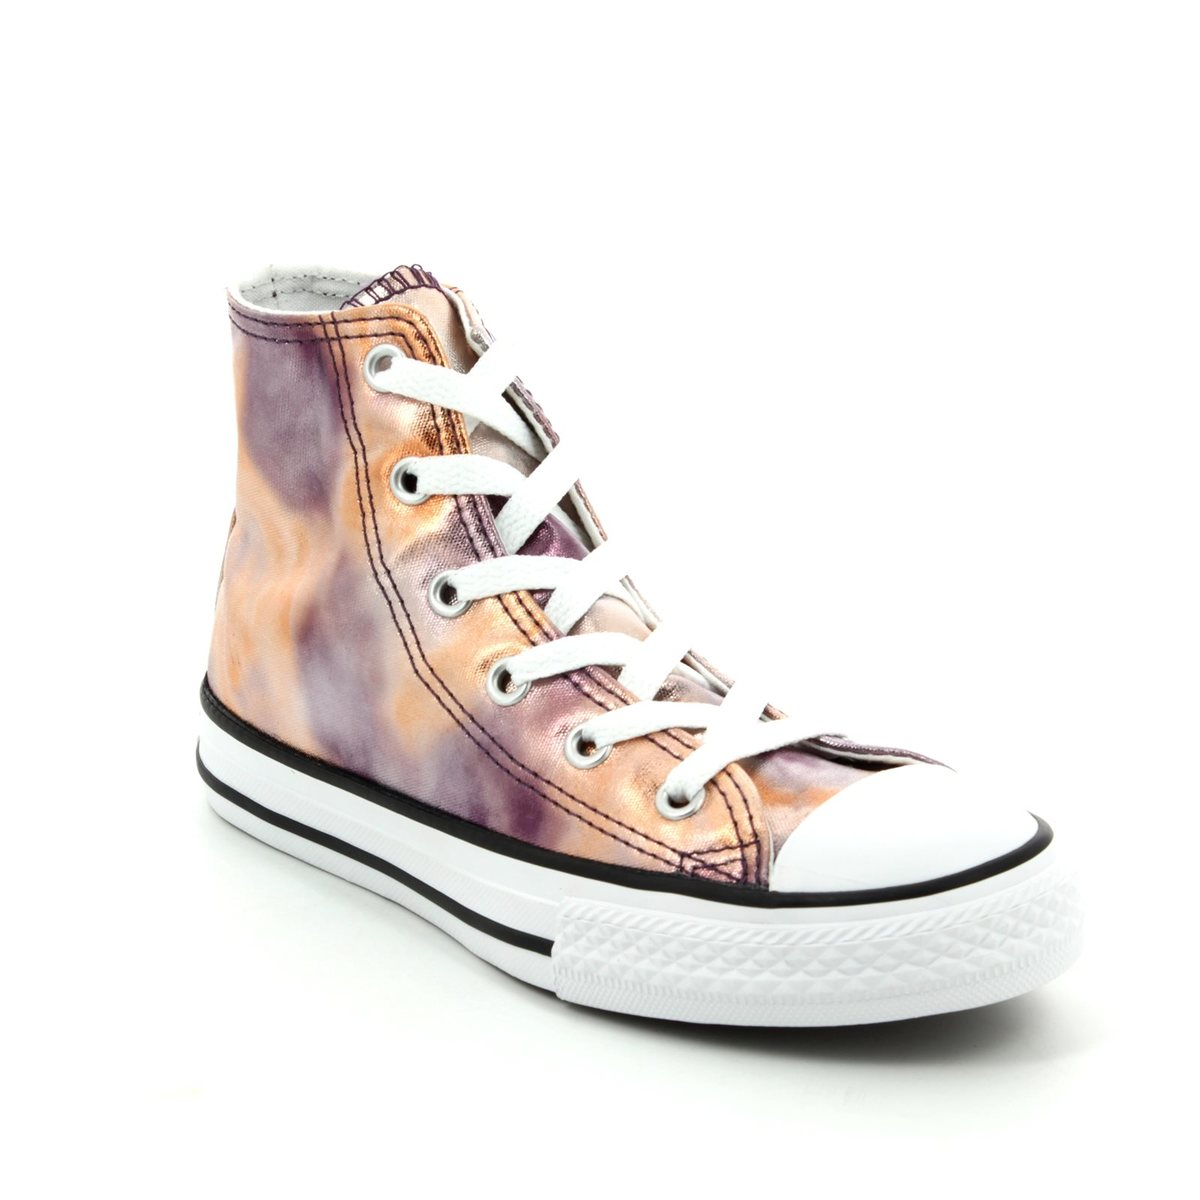 88f378bb78eb36 Converse Trainers - Pink - 357619C Chuck Taylor All Star Hi Top Junior